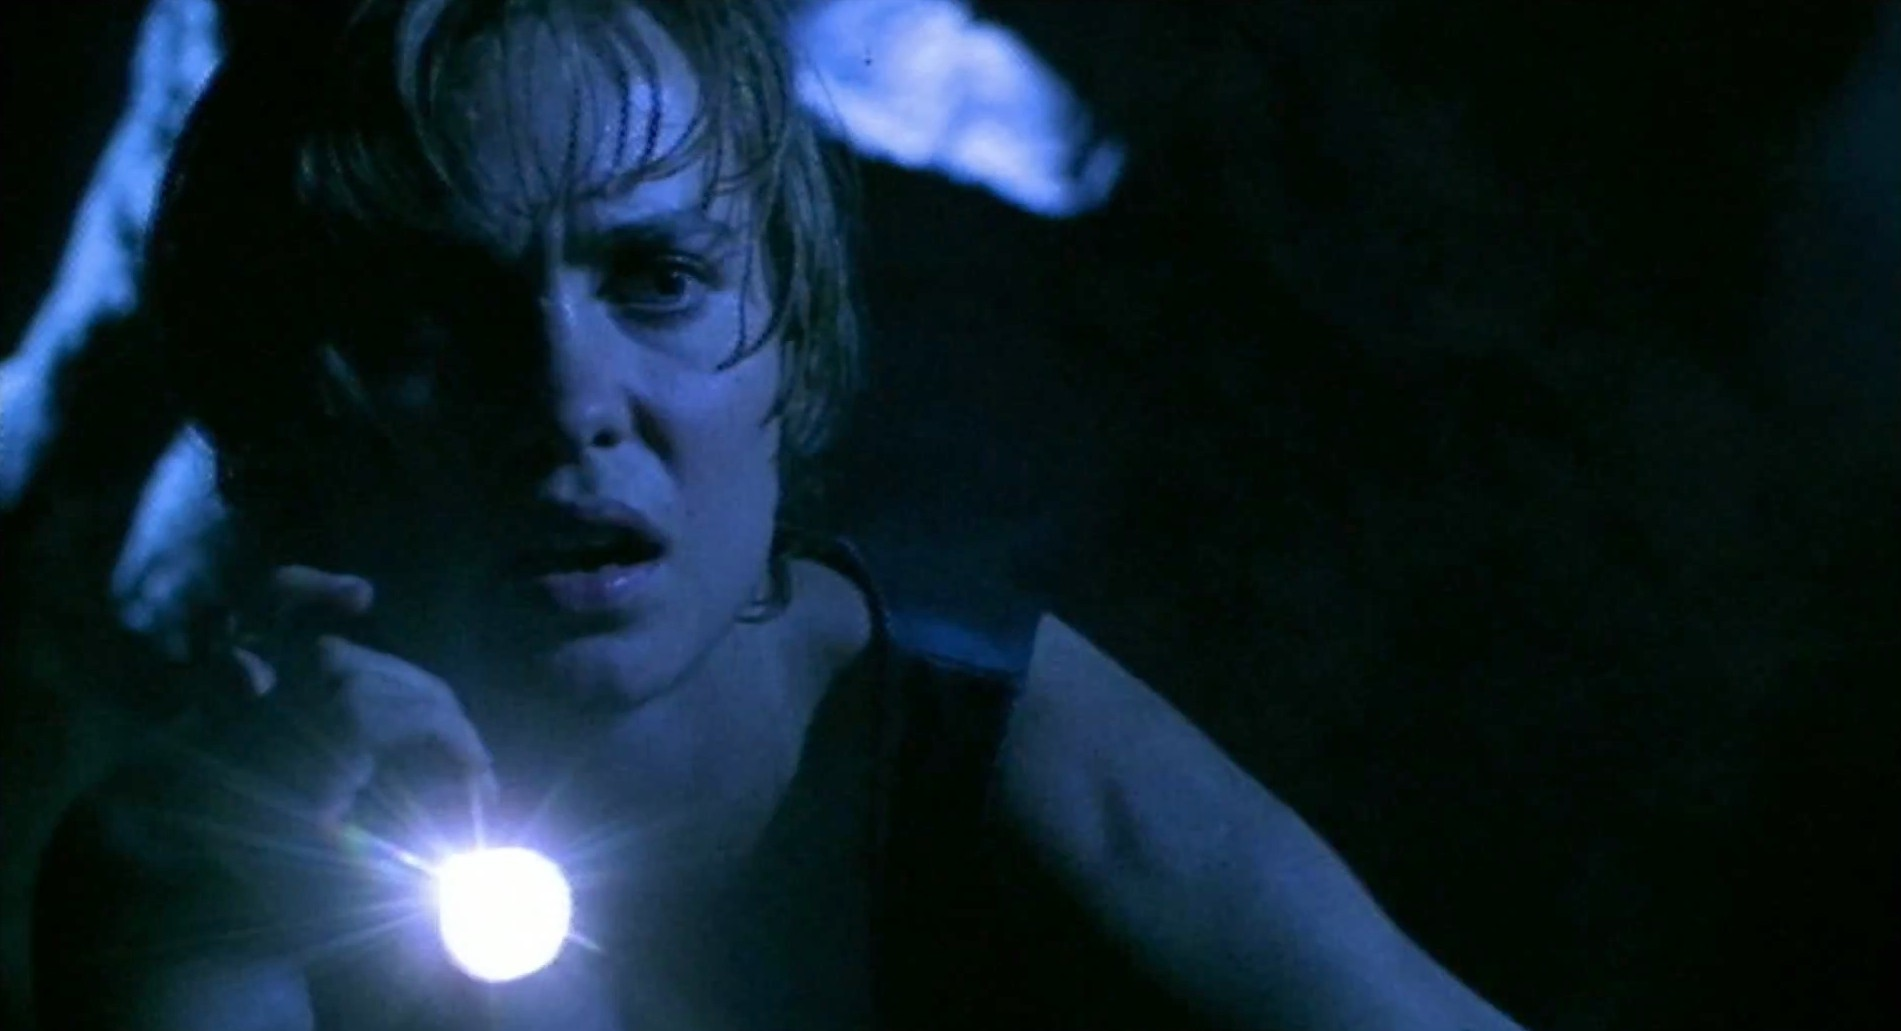 radha-mitchell-as-carolyn-fry-in-pitch-black.jpg